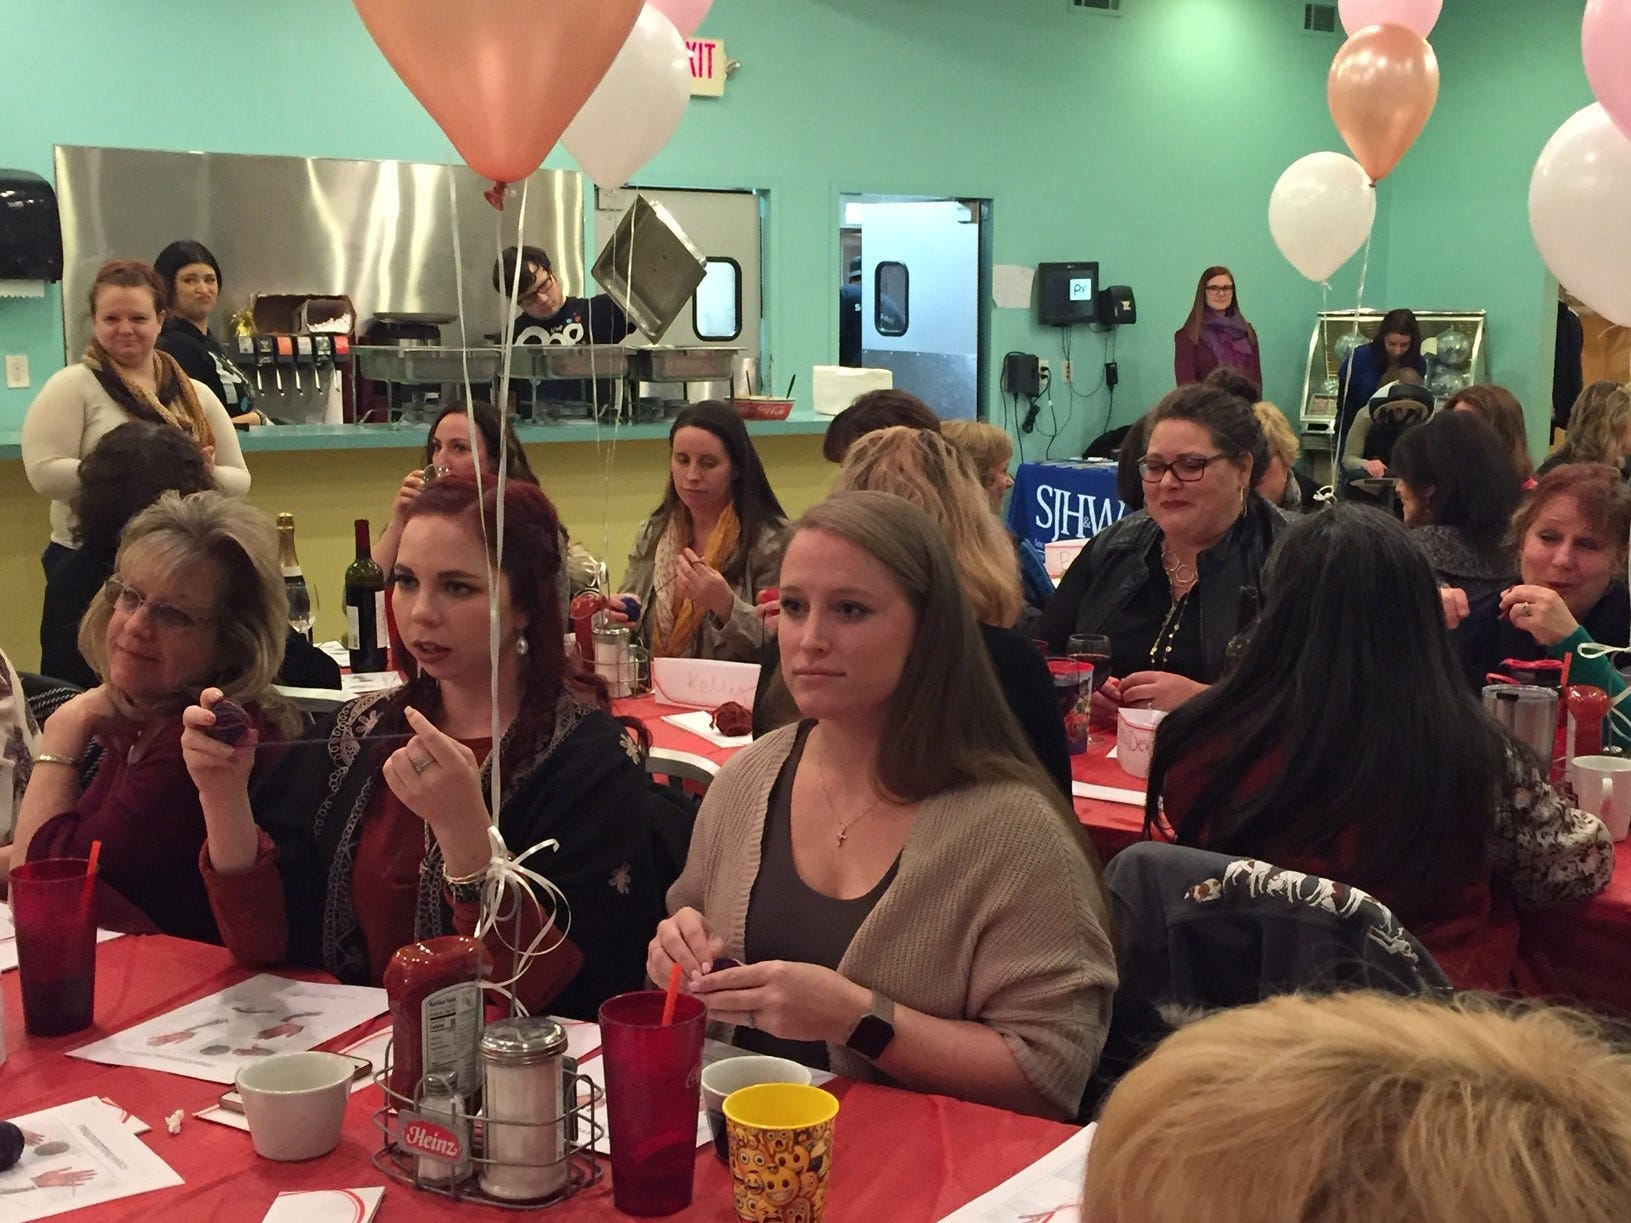 Guests experiment with hand knitting for stress relief at The Pop Shop in Collingswood during the Galentine's Celebration.